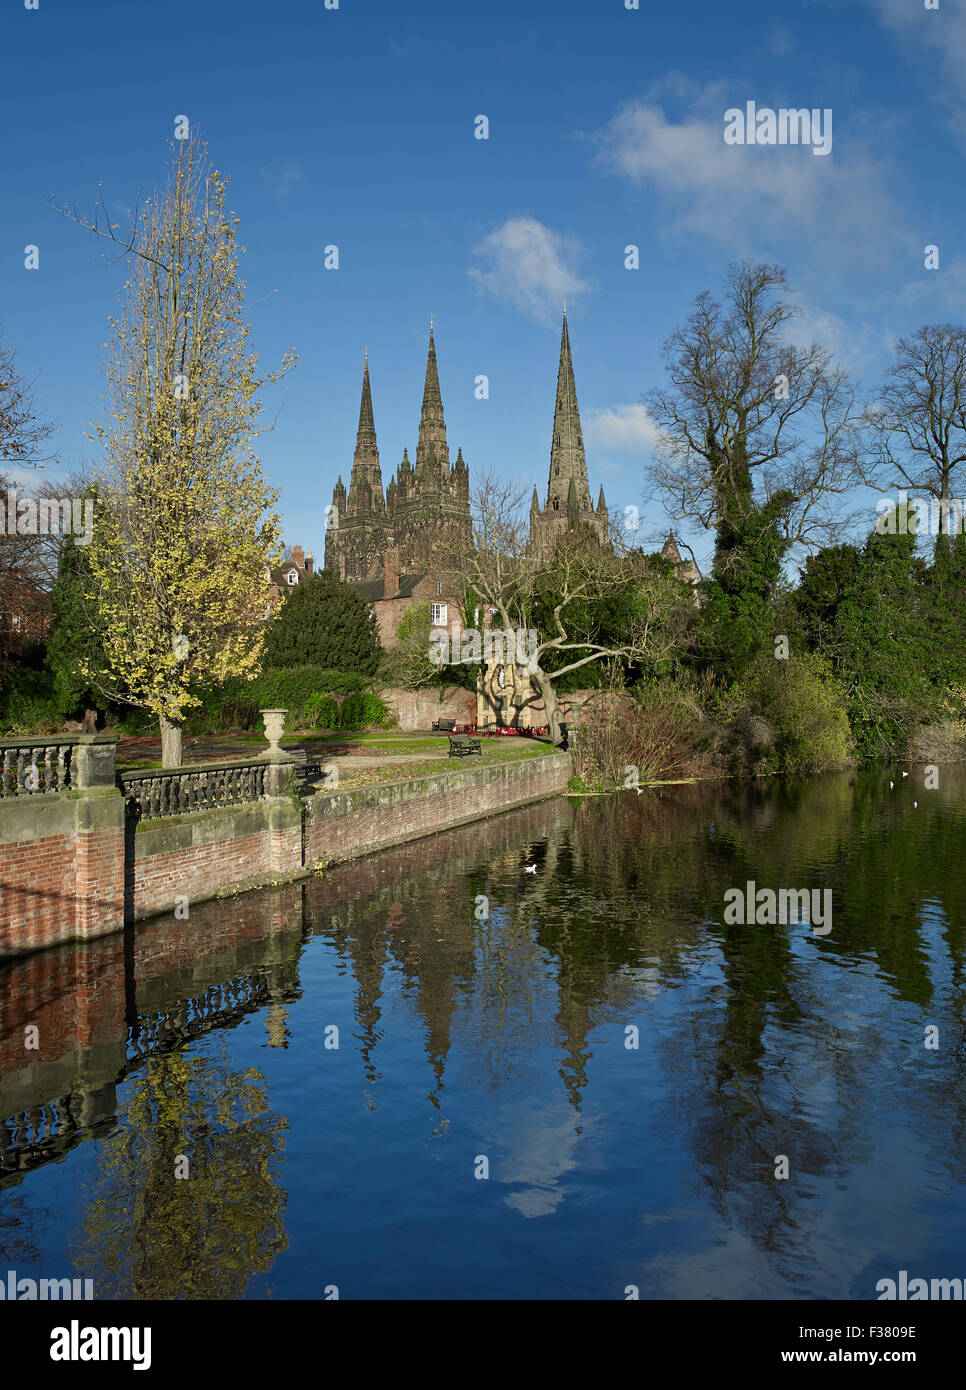 Lichfield Cathedral tres agujas Imagen De Stock